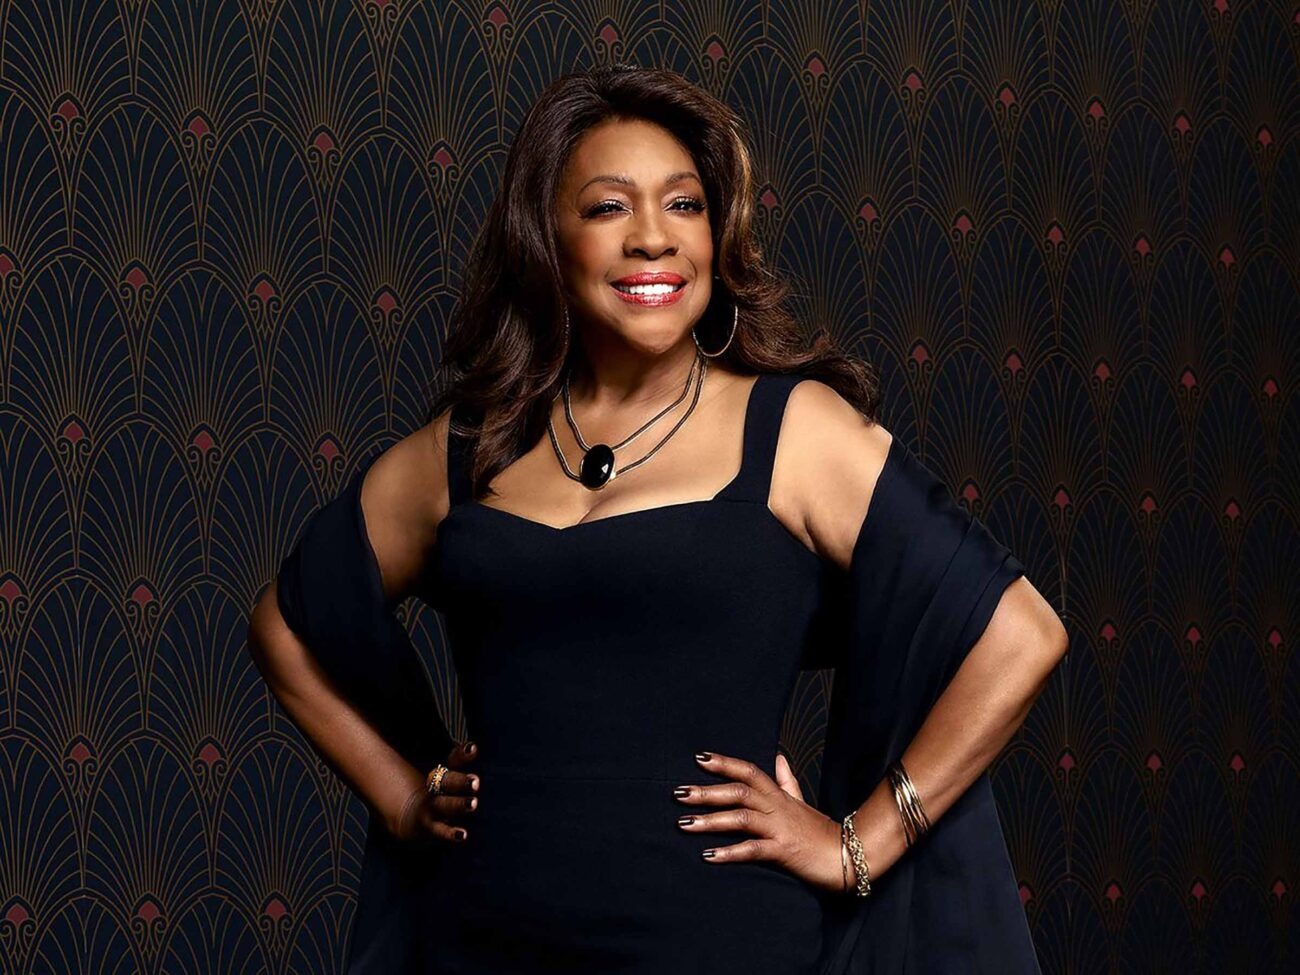 Mary Wilson, founding member of Motown super group The Supremes, has died at age 76. Read how the group made music history.